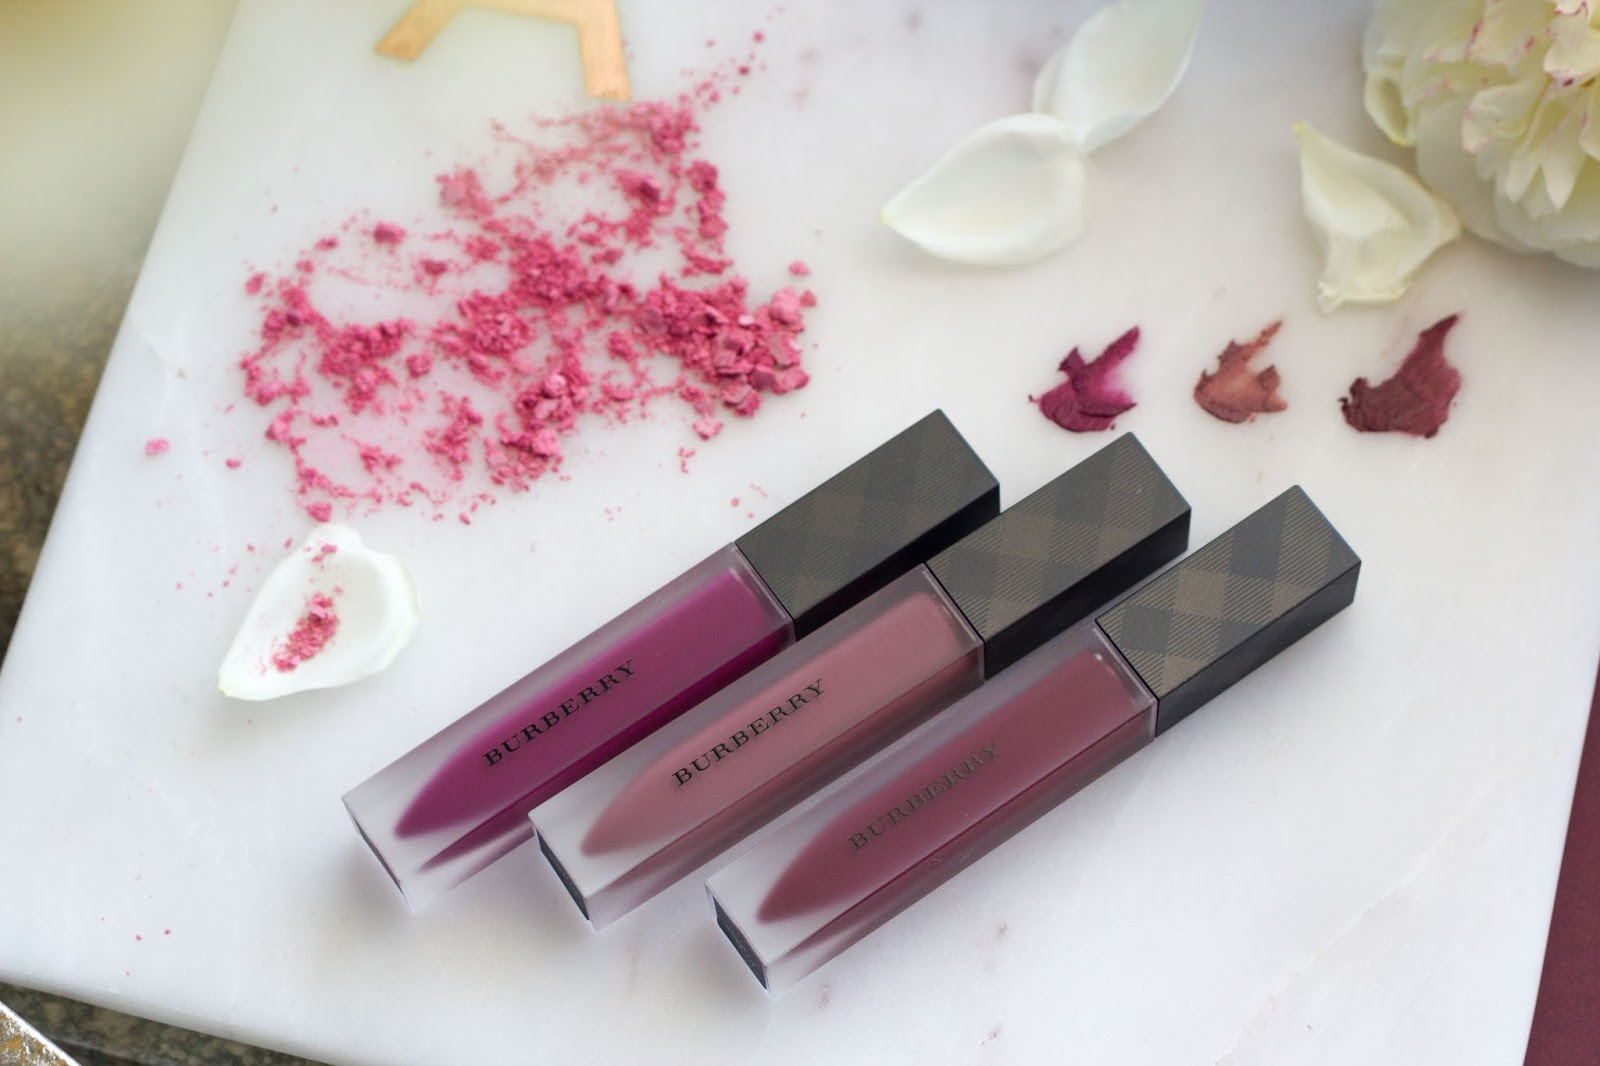 Burberry London Beauty liquid lip velvet lip colors